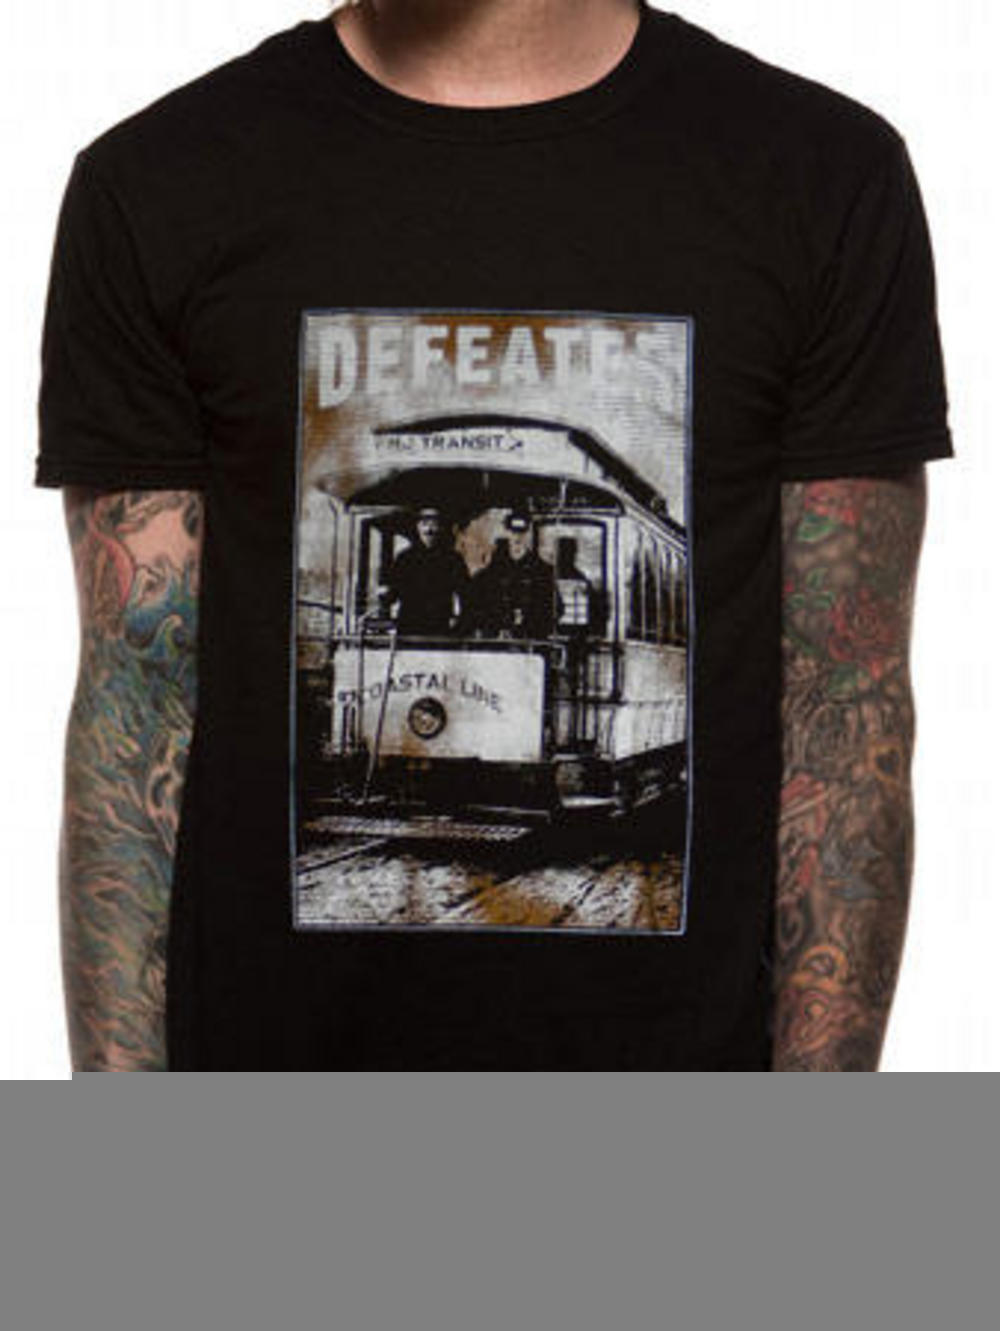 Defeater (NJ Transit) T-shirt